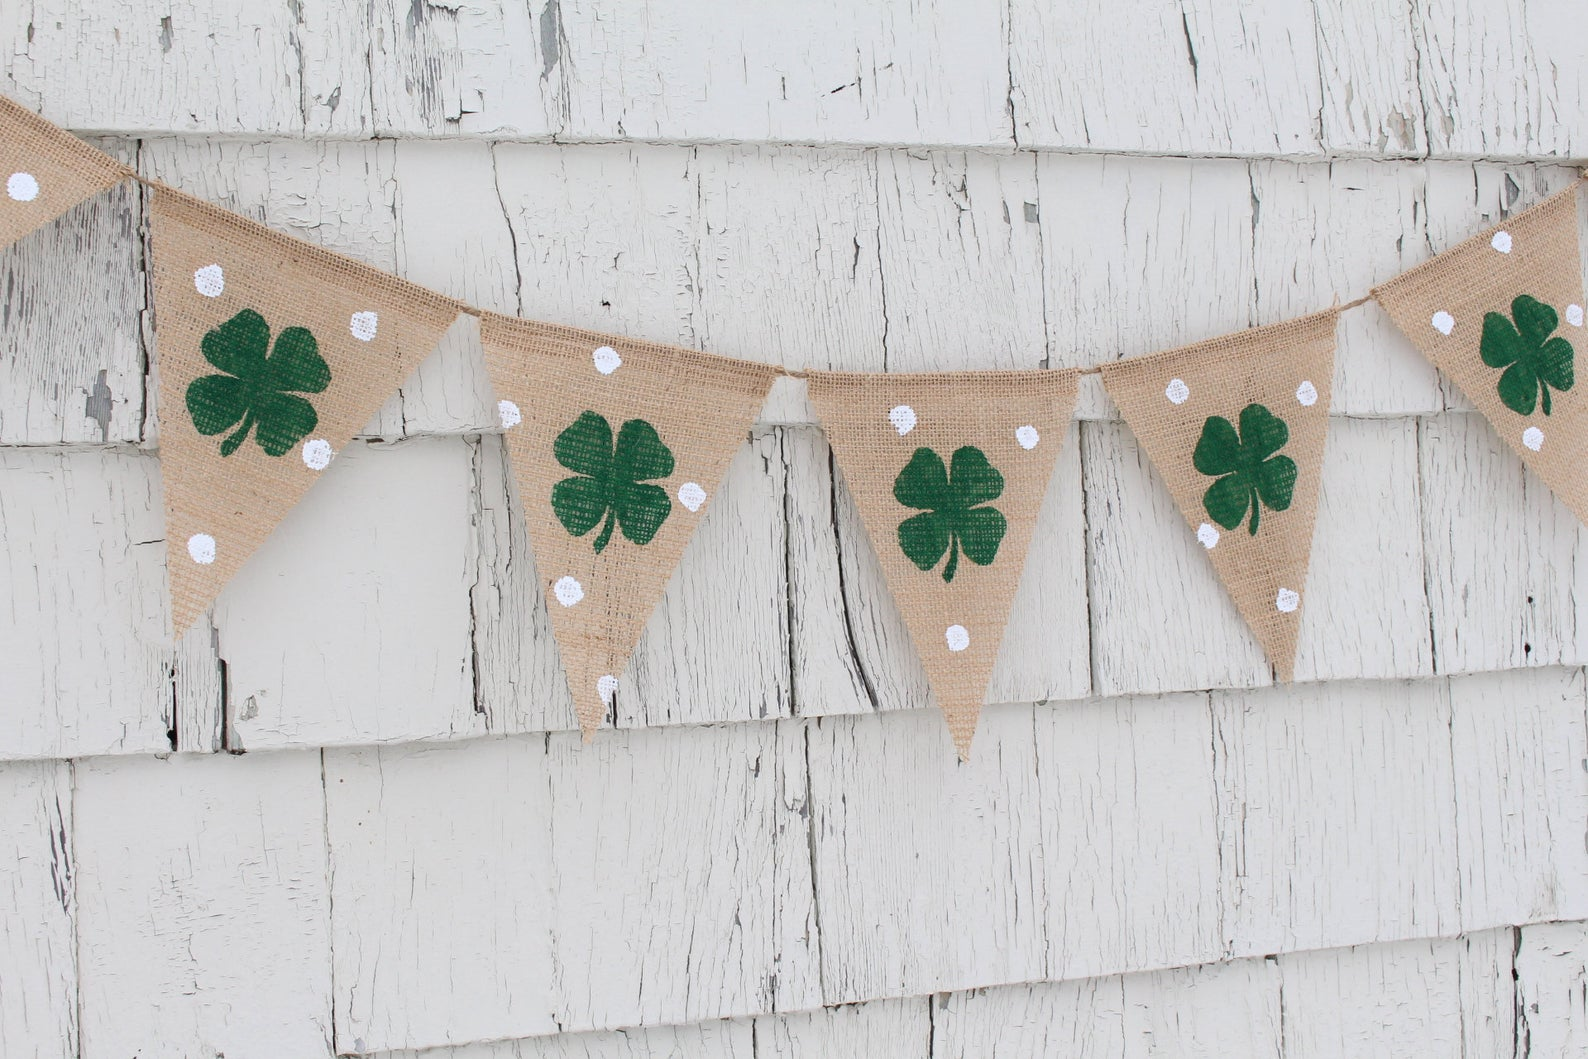 Decoration ideas for St. Patrick & # 39; s Day - clover wreath